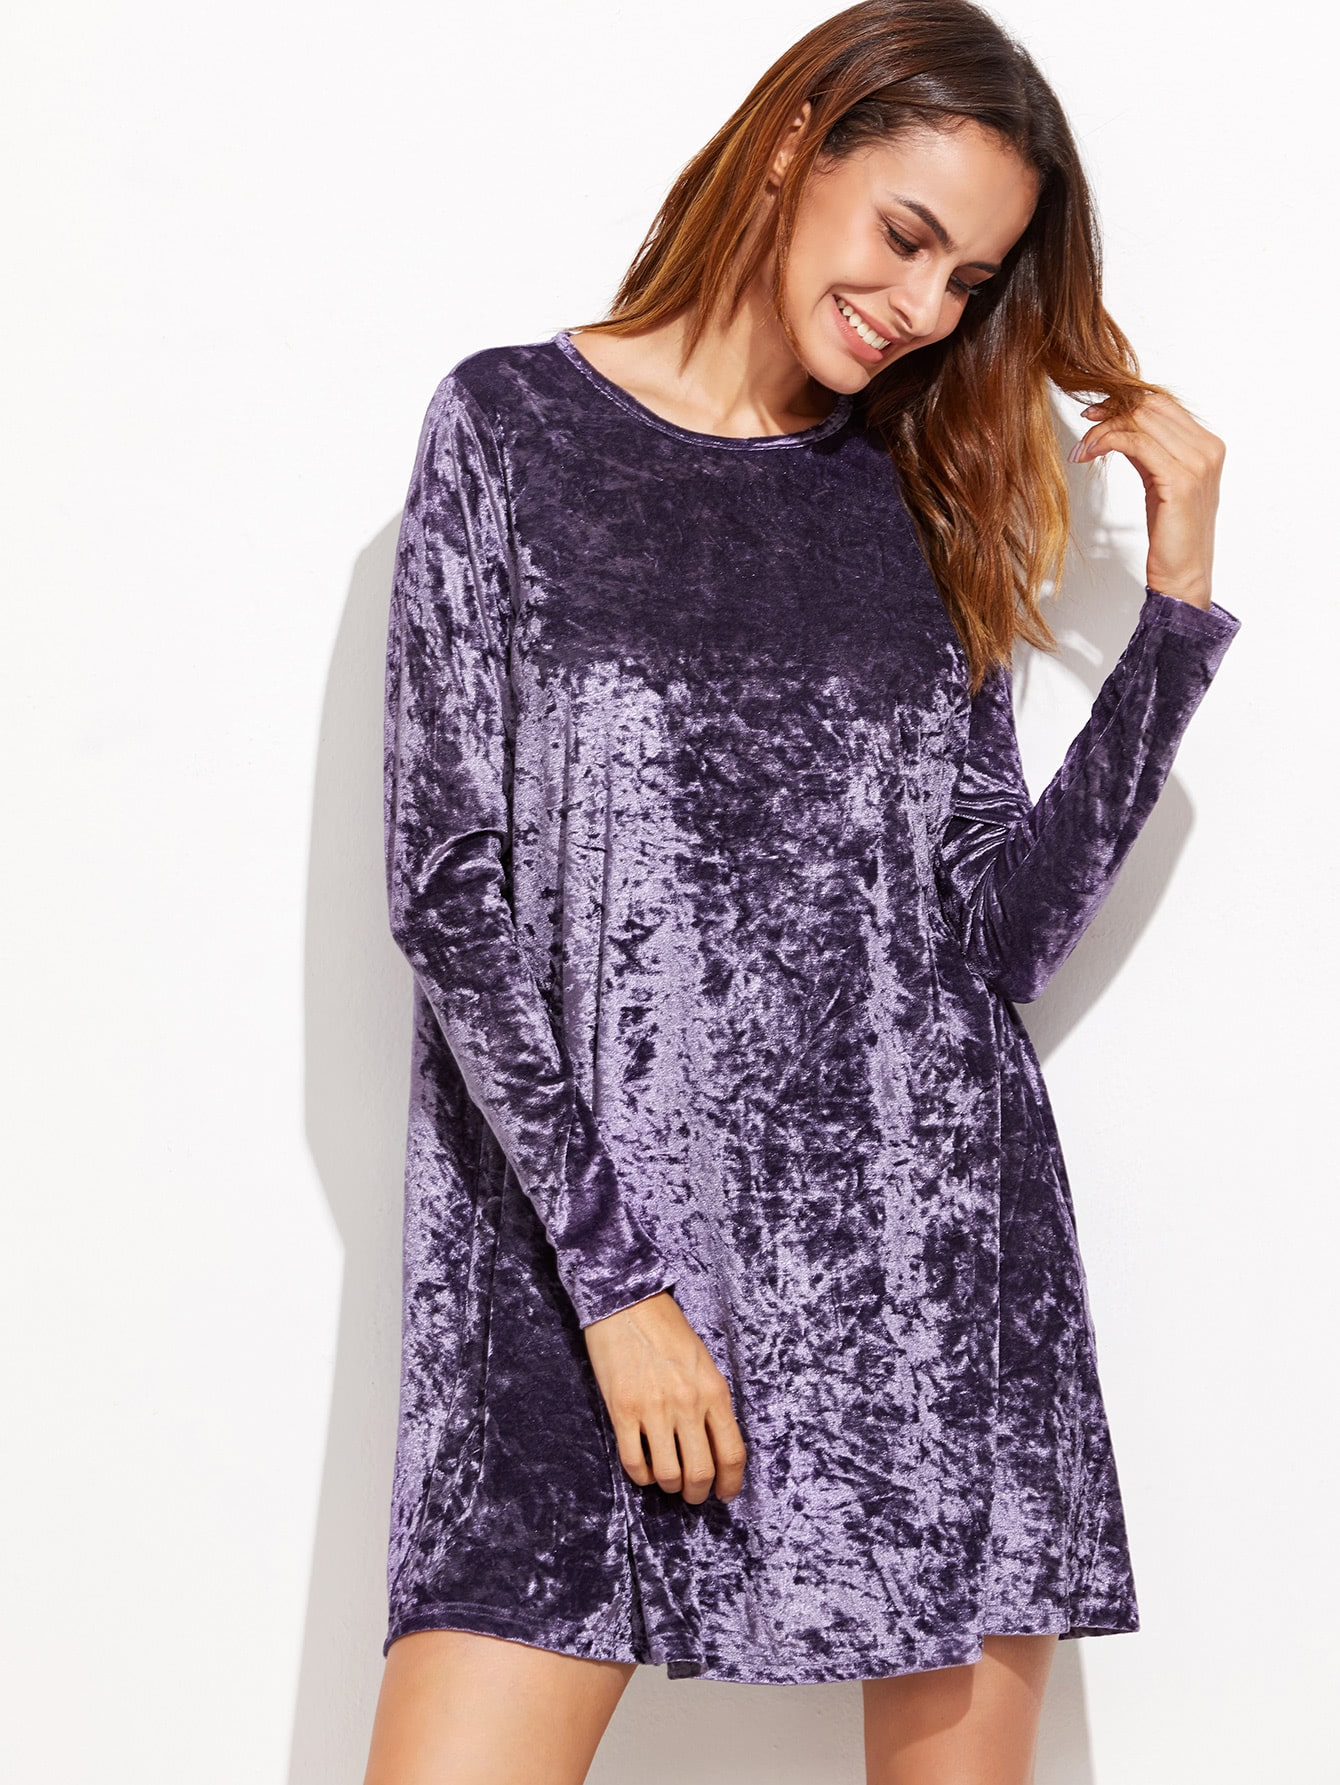 Purple Crushed Velvet Swing Dress -SheIn(Sheinside)